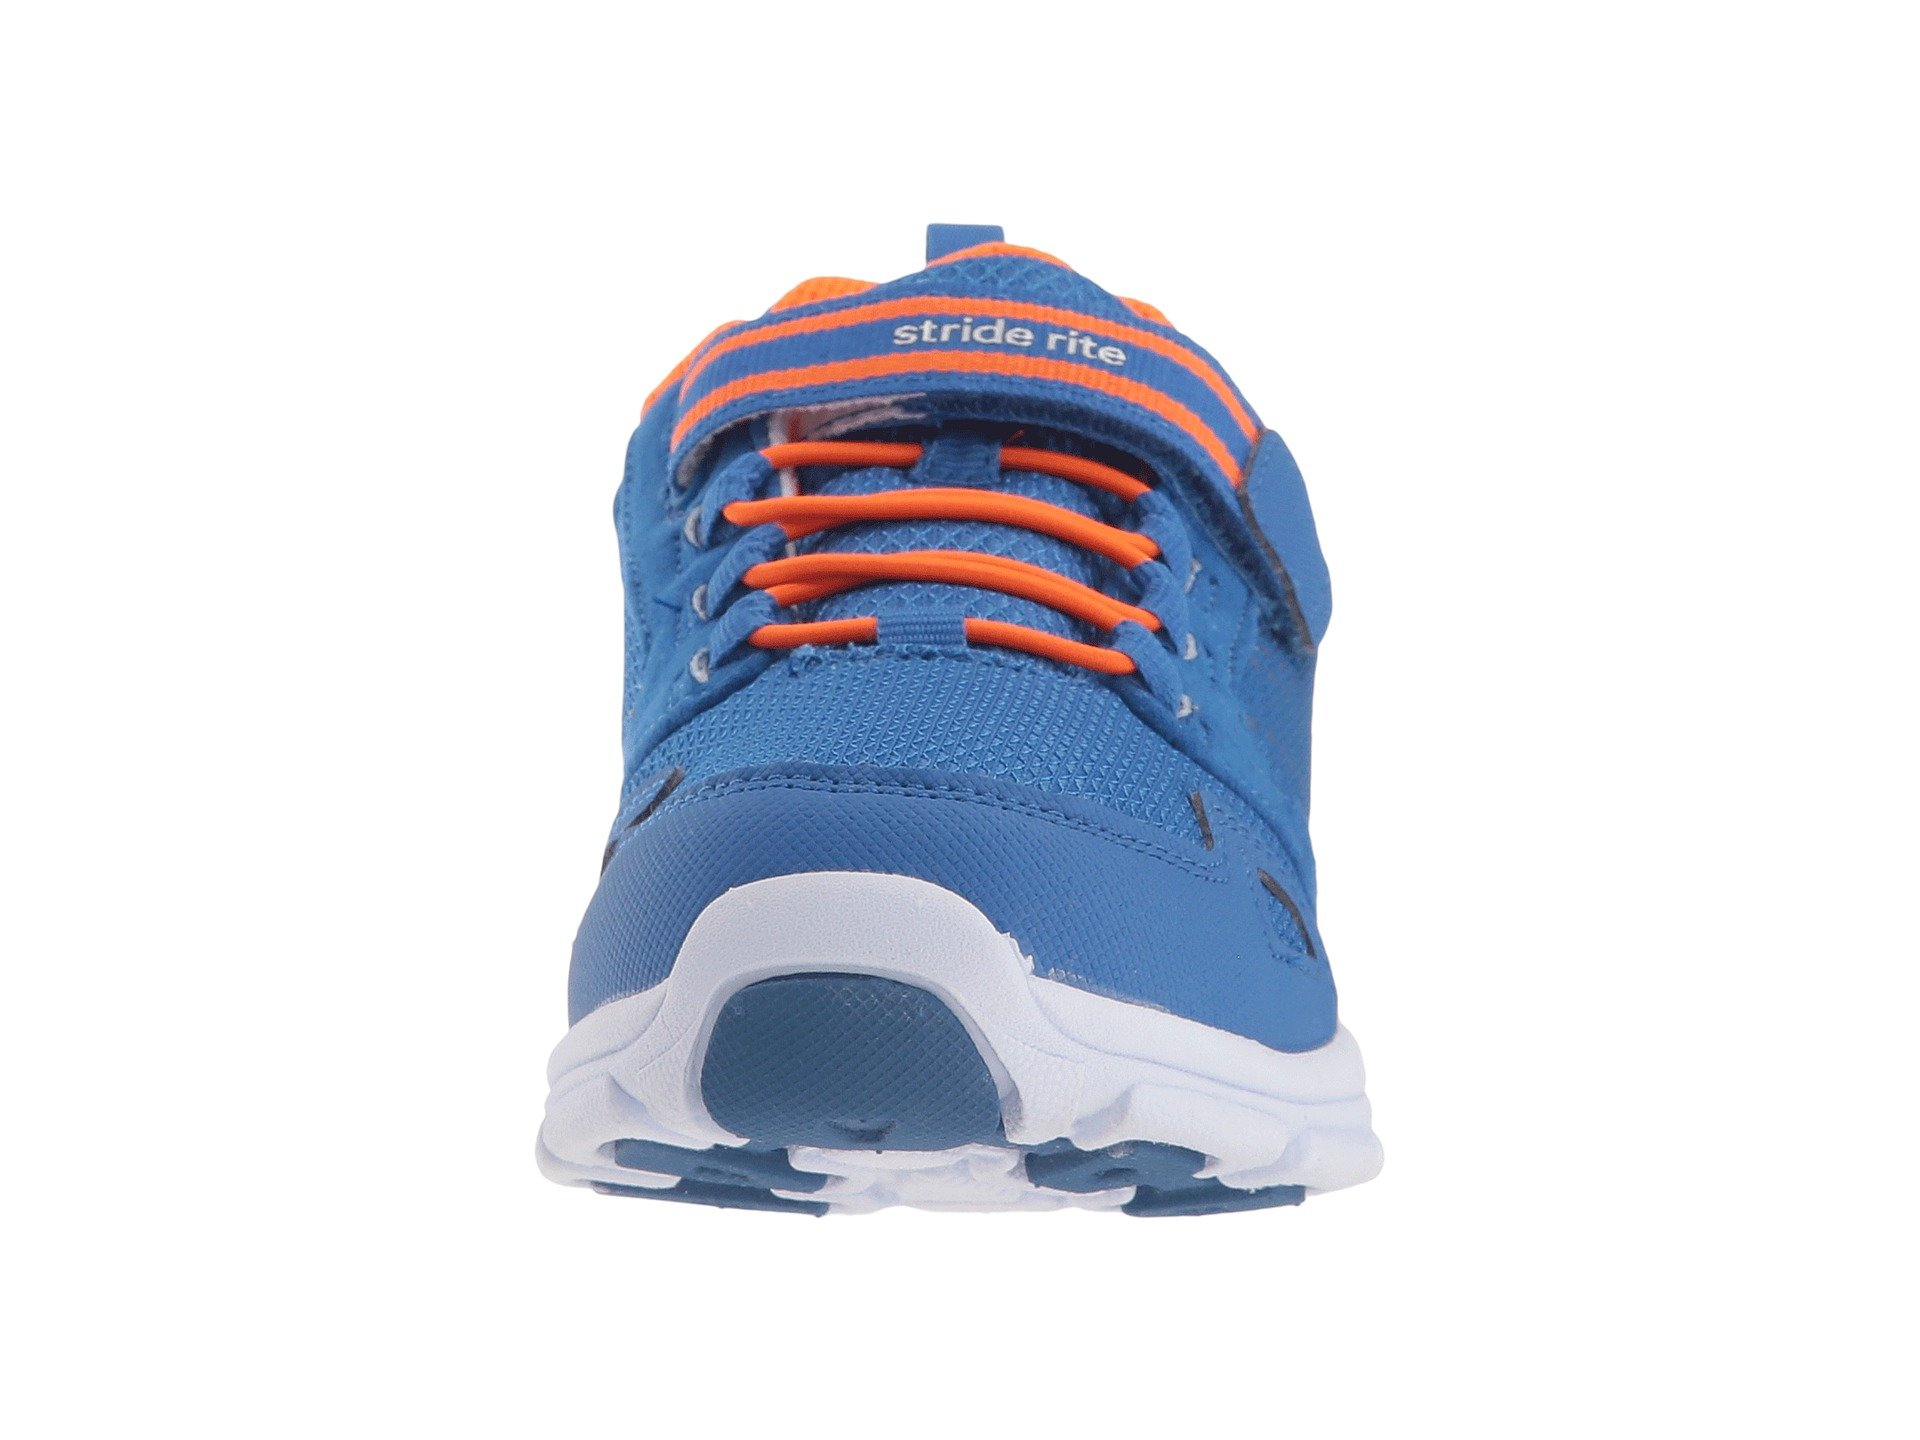 Stride Rite Mens Made 2 Play Taylor (Toddler/Little Kid) Royal 5.5 Toddler M by Stride Rite (Image #5)